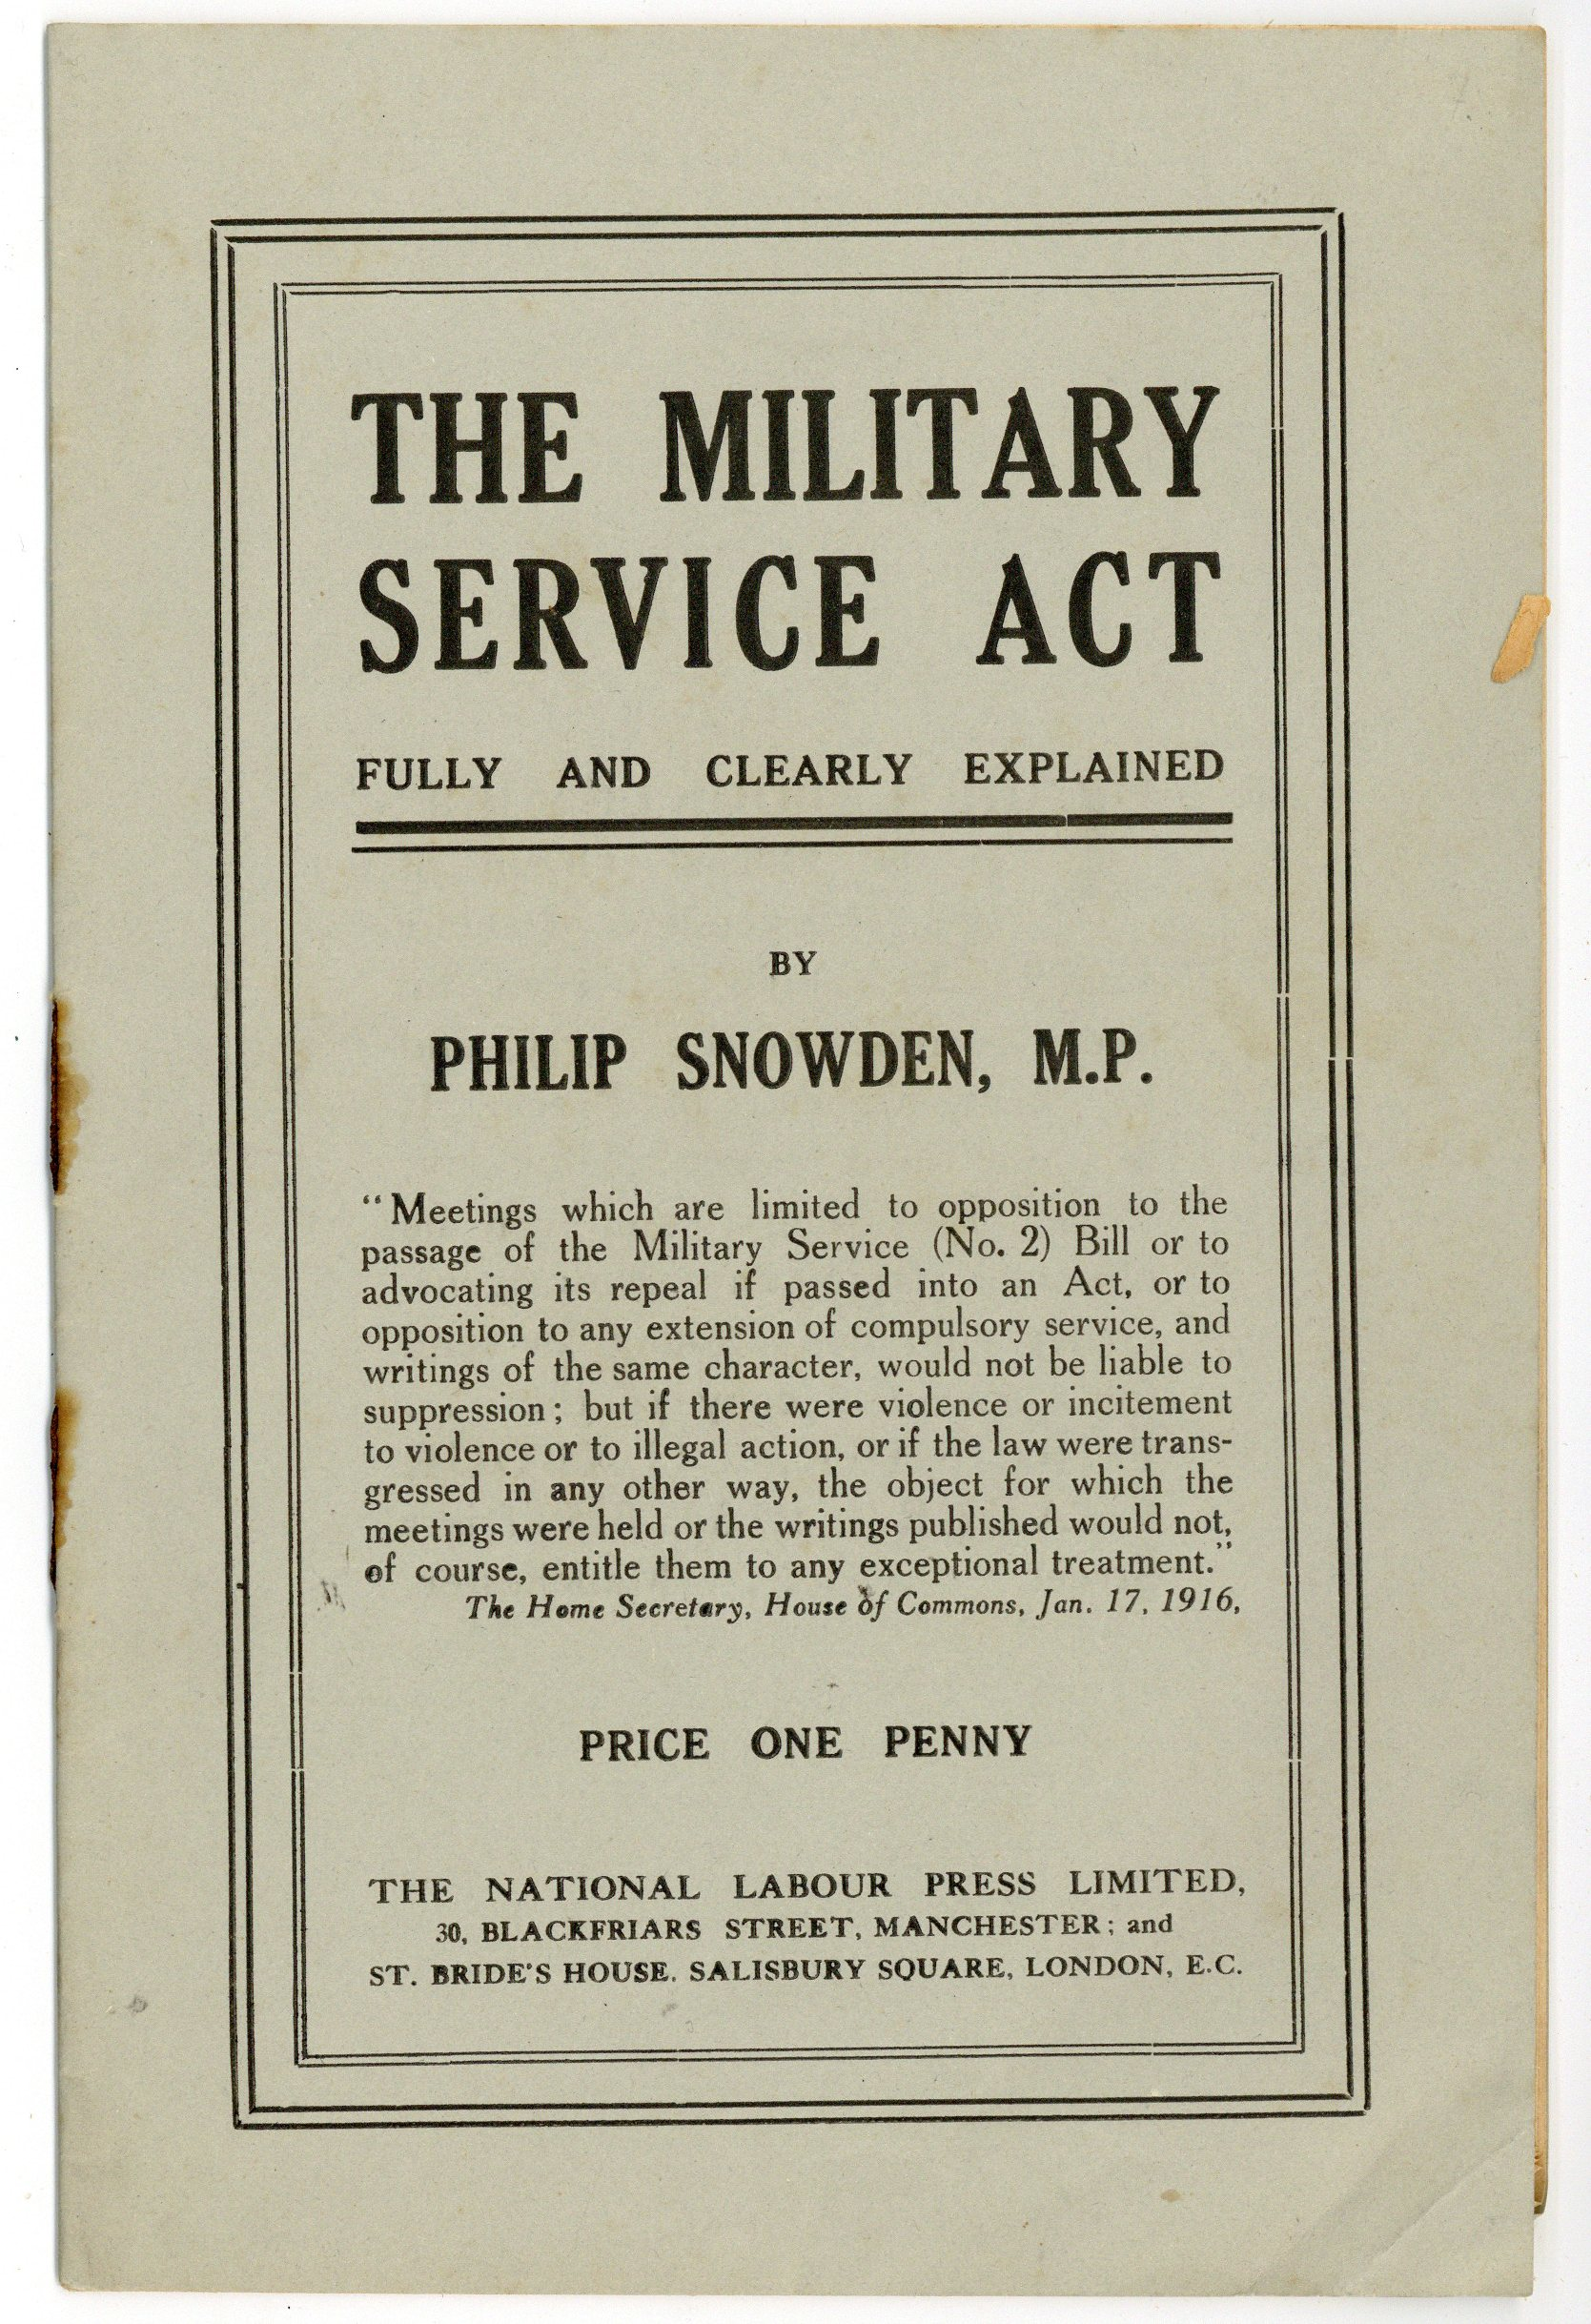 The Military Service Act Fully and Clearly Explained, by Philip Snowden (MP), 1916 (20th Century Collection, 343.0122 SNO)